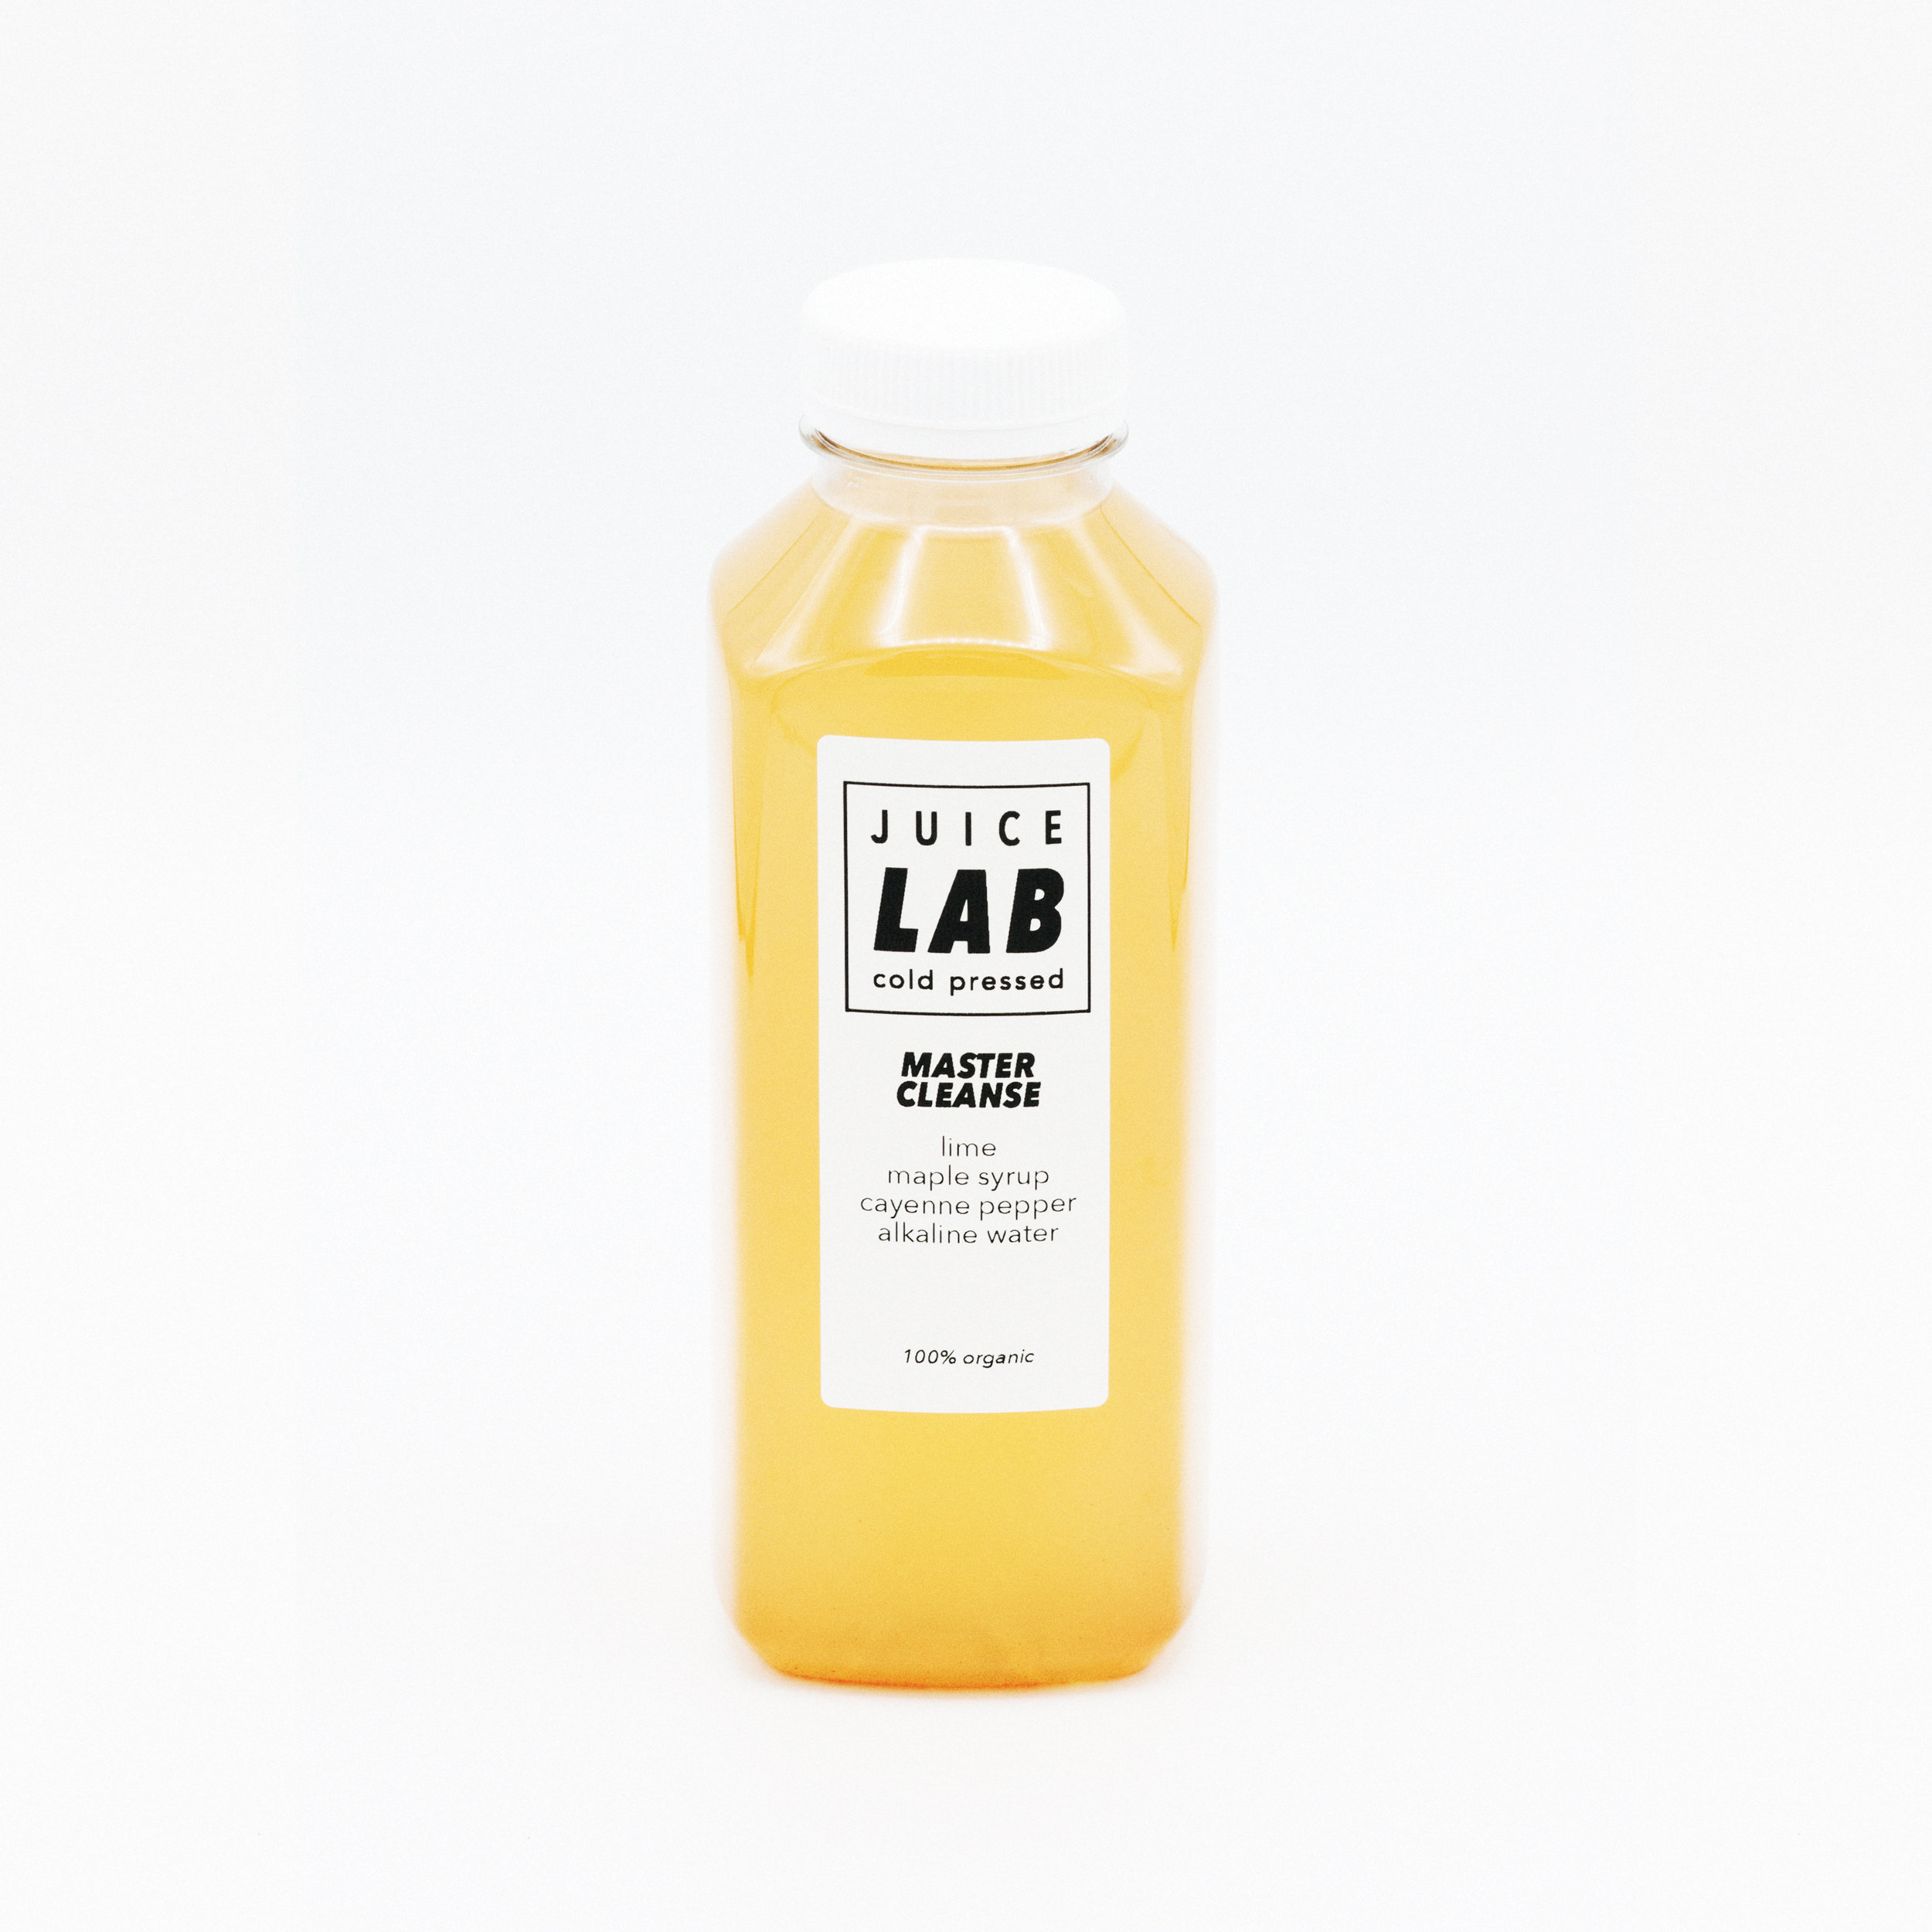 master cleanse square.jpg